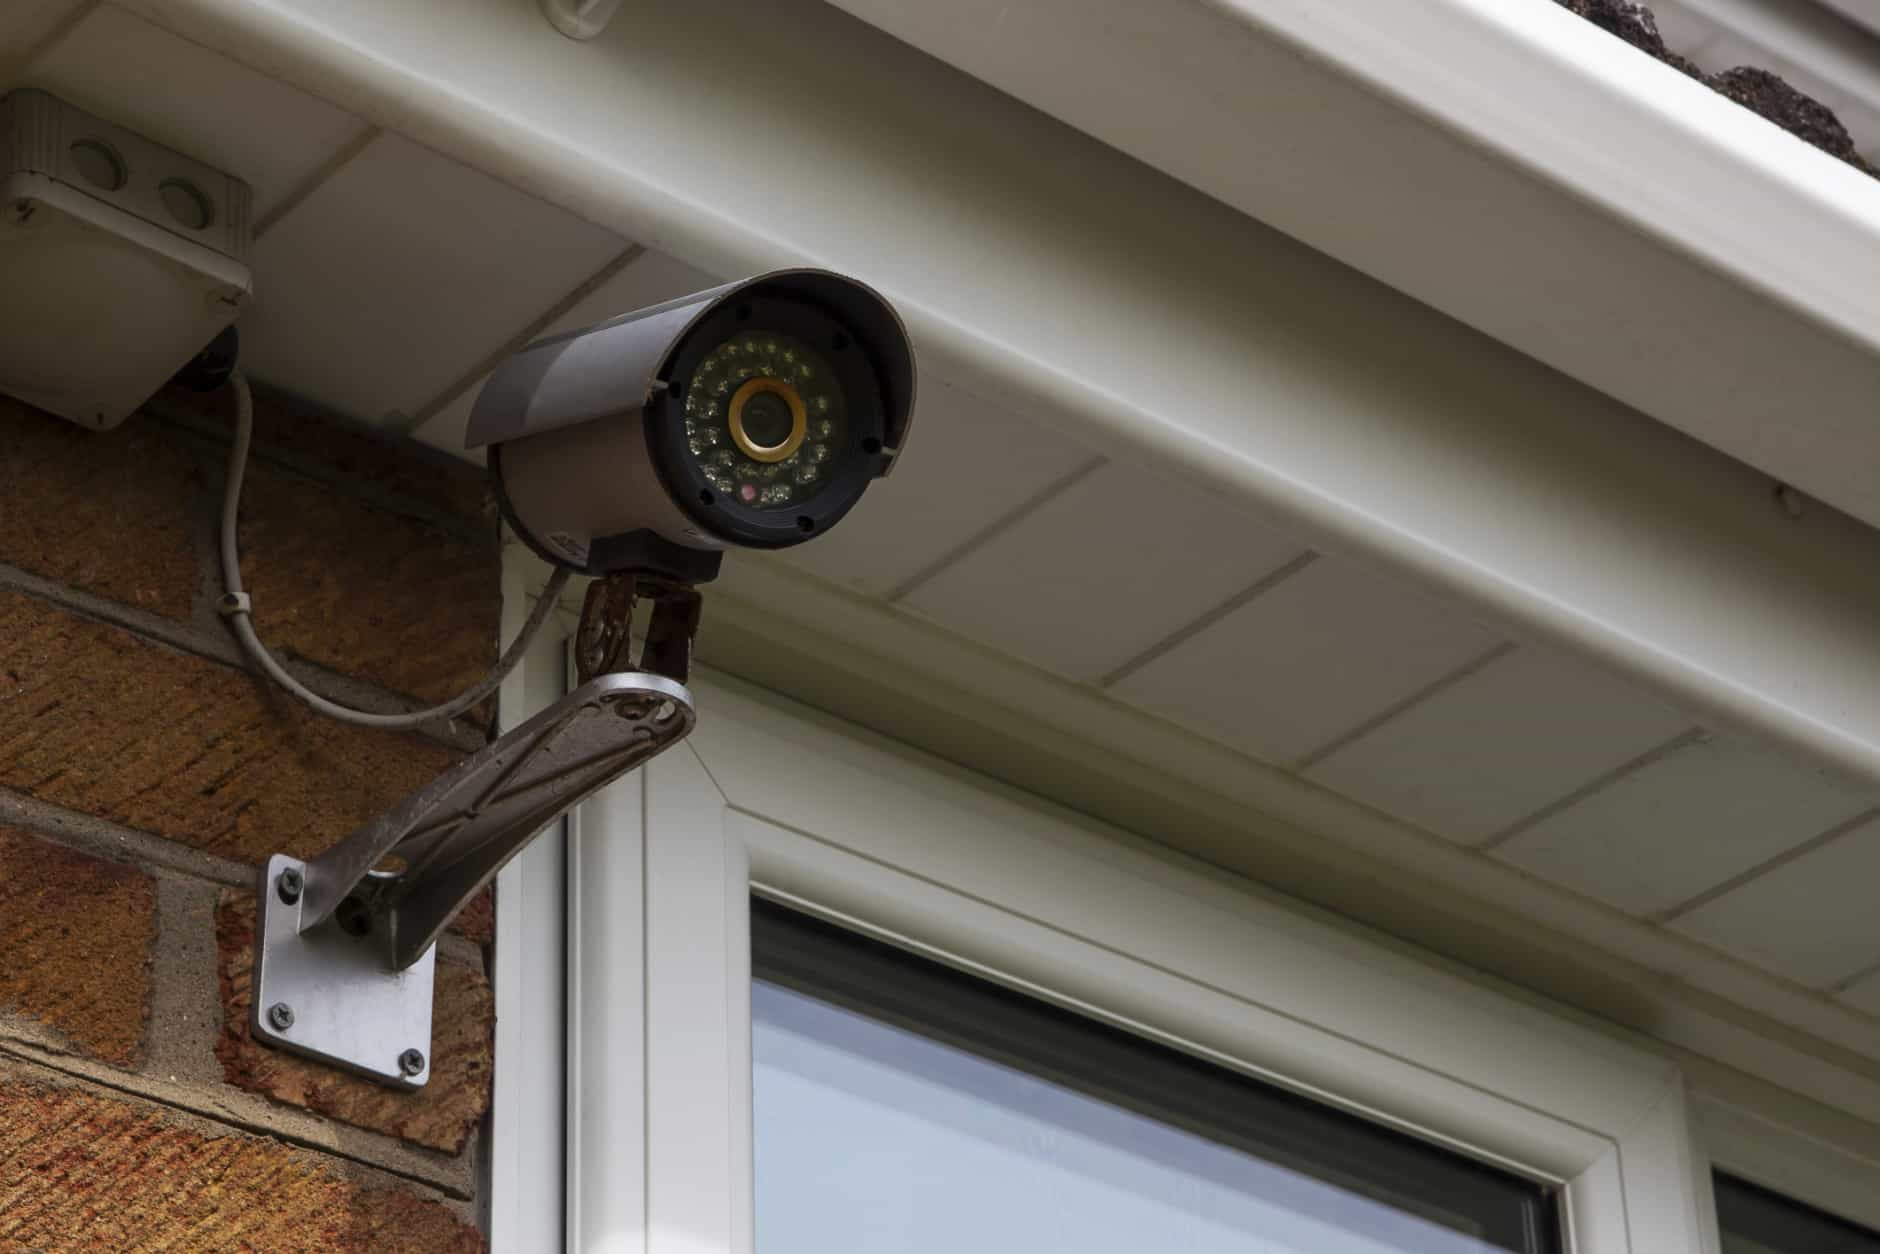 security camera installation cost - Security Camera Installation Cost